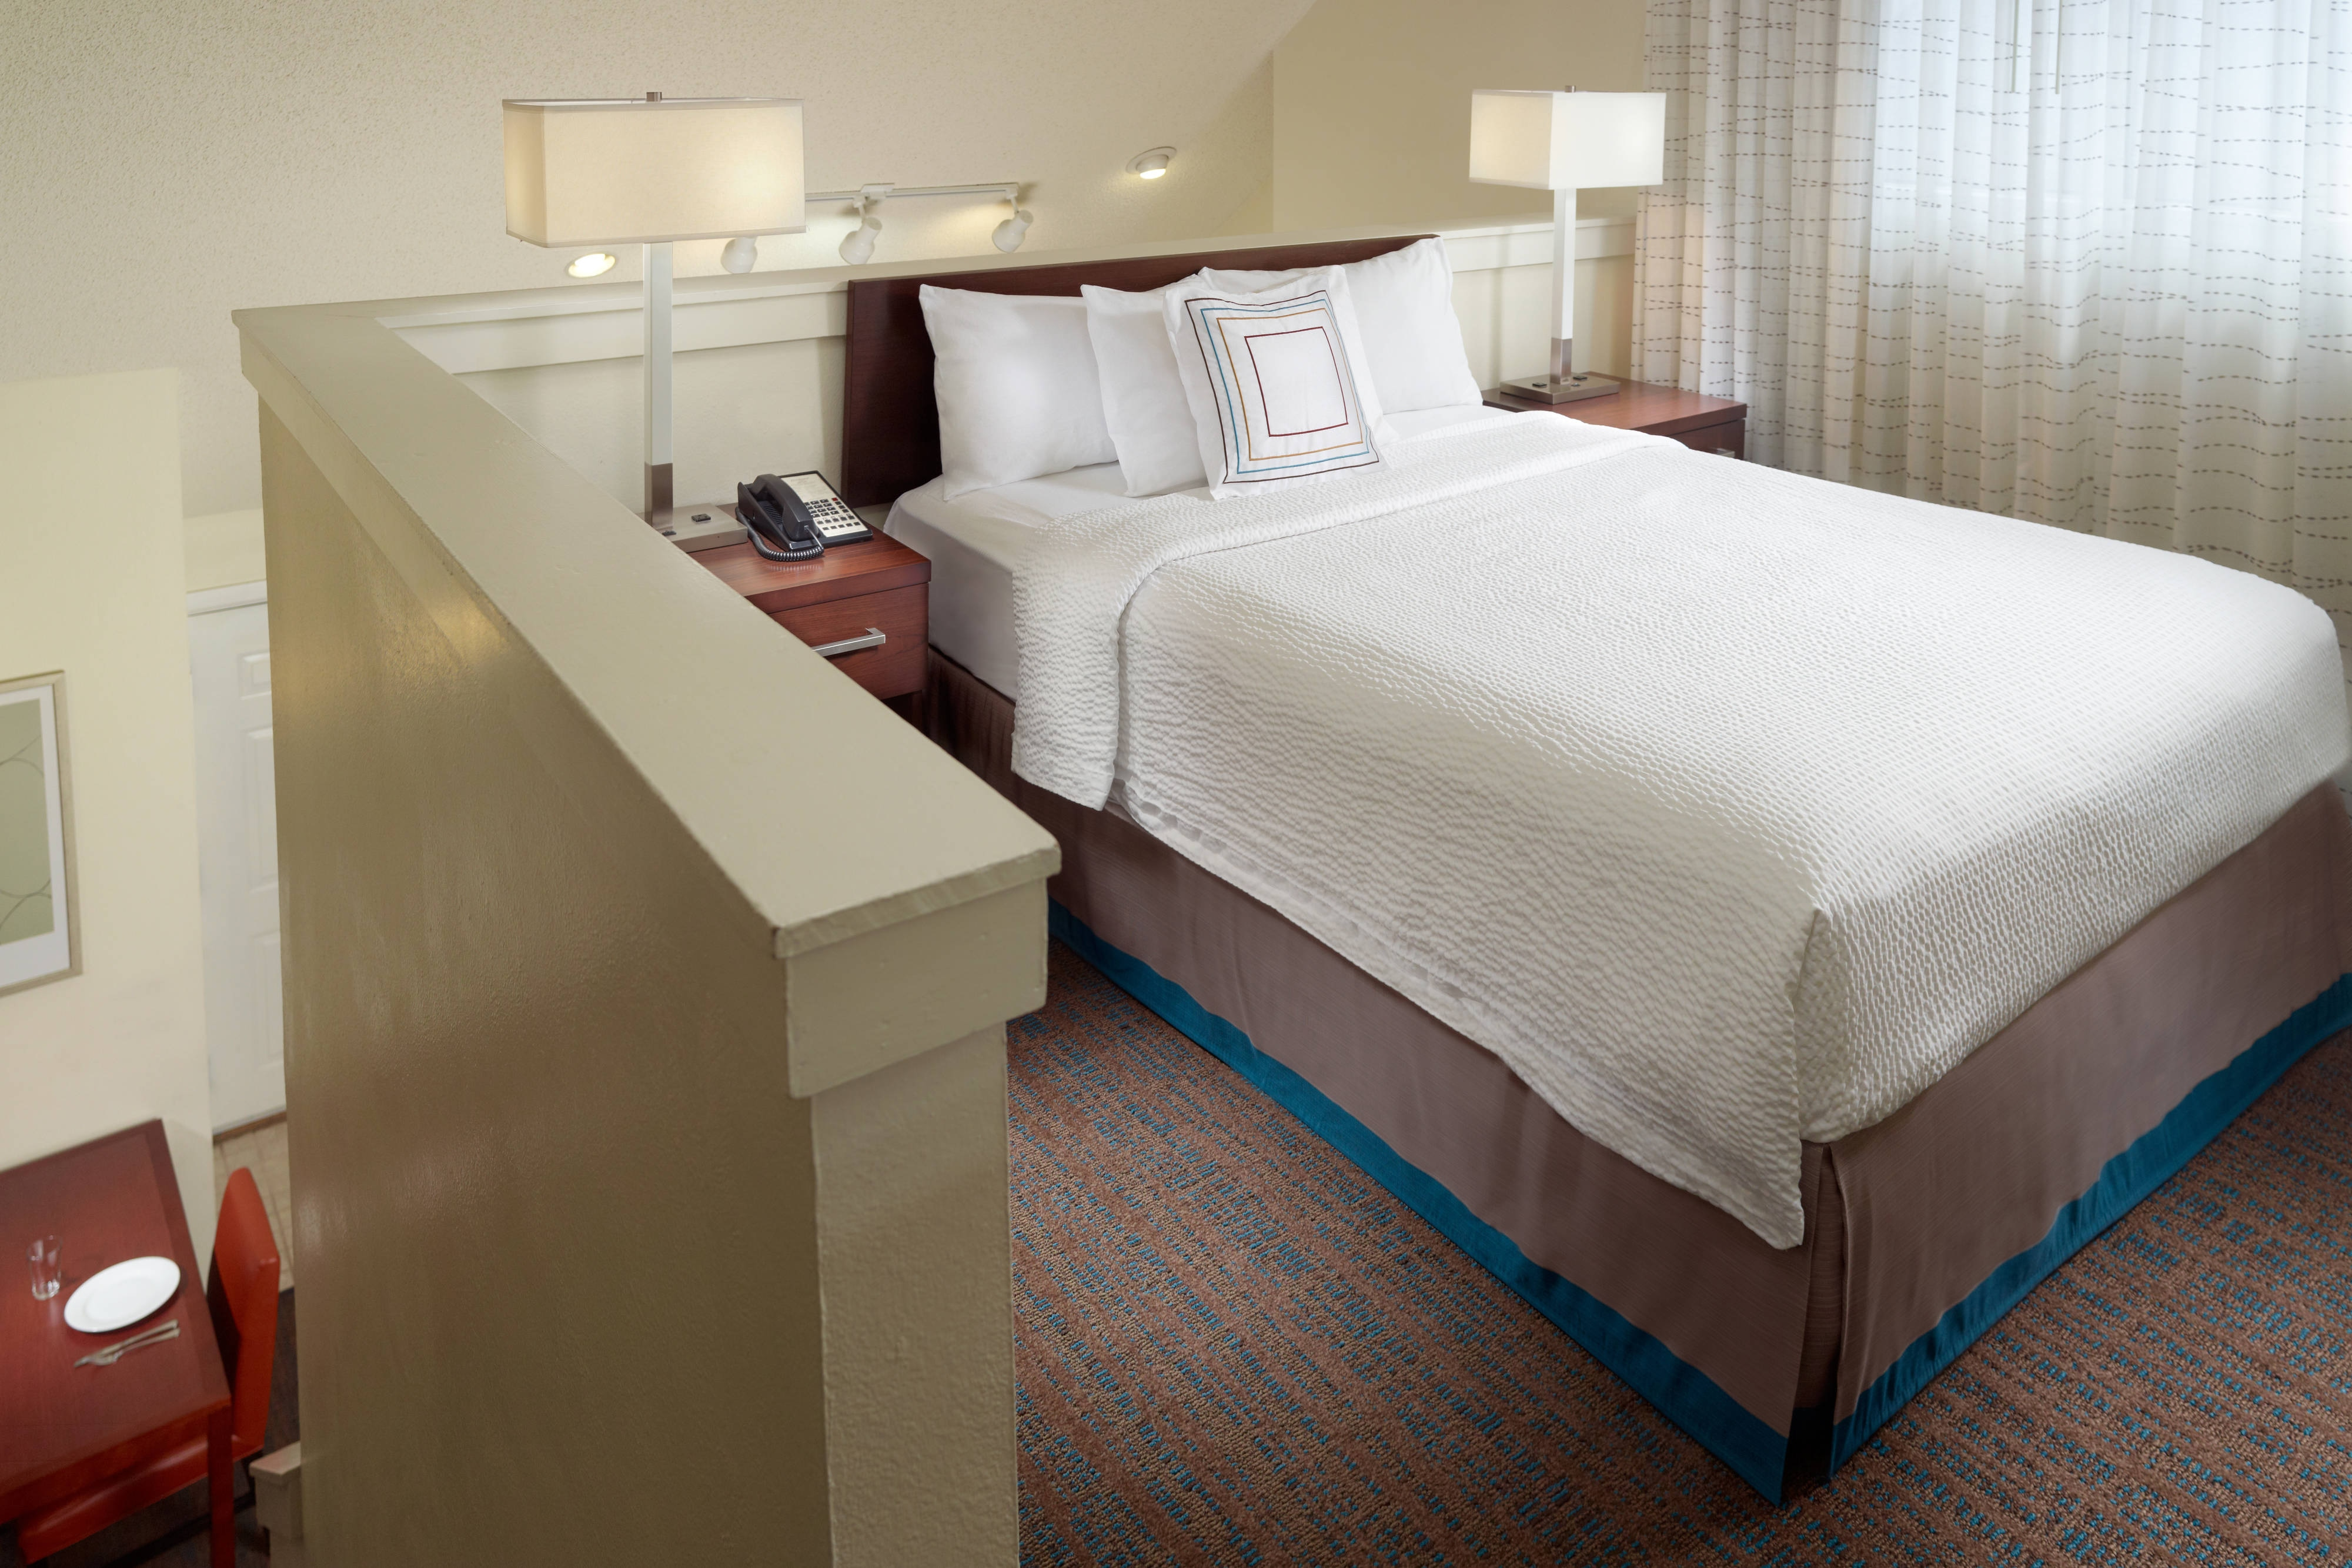 Hotels With 2 Bedroom Suites In Nashville Tn Residence Inn Nashville Airport